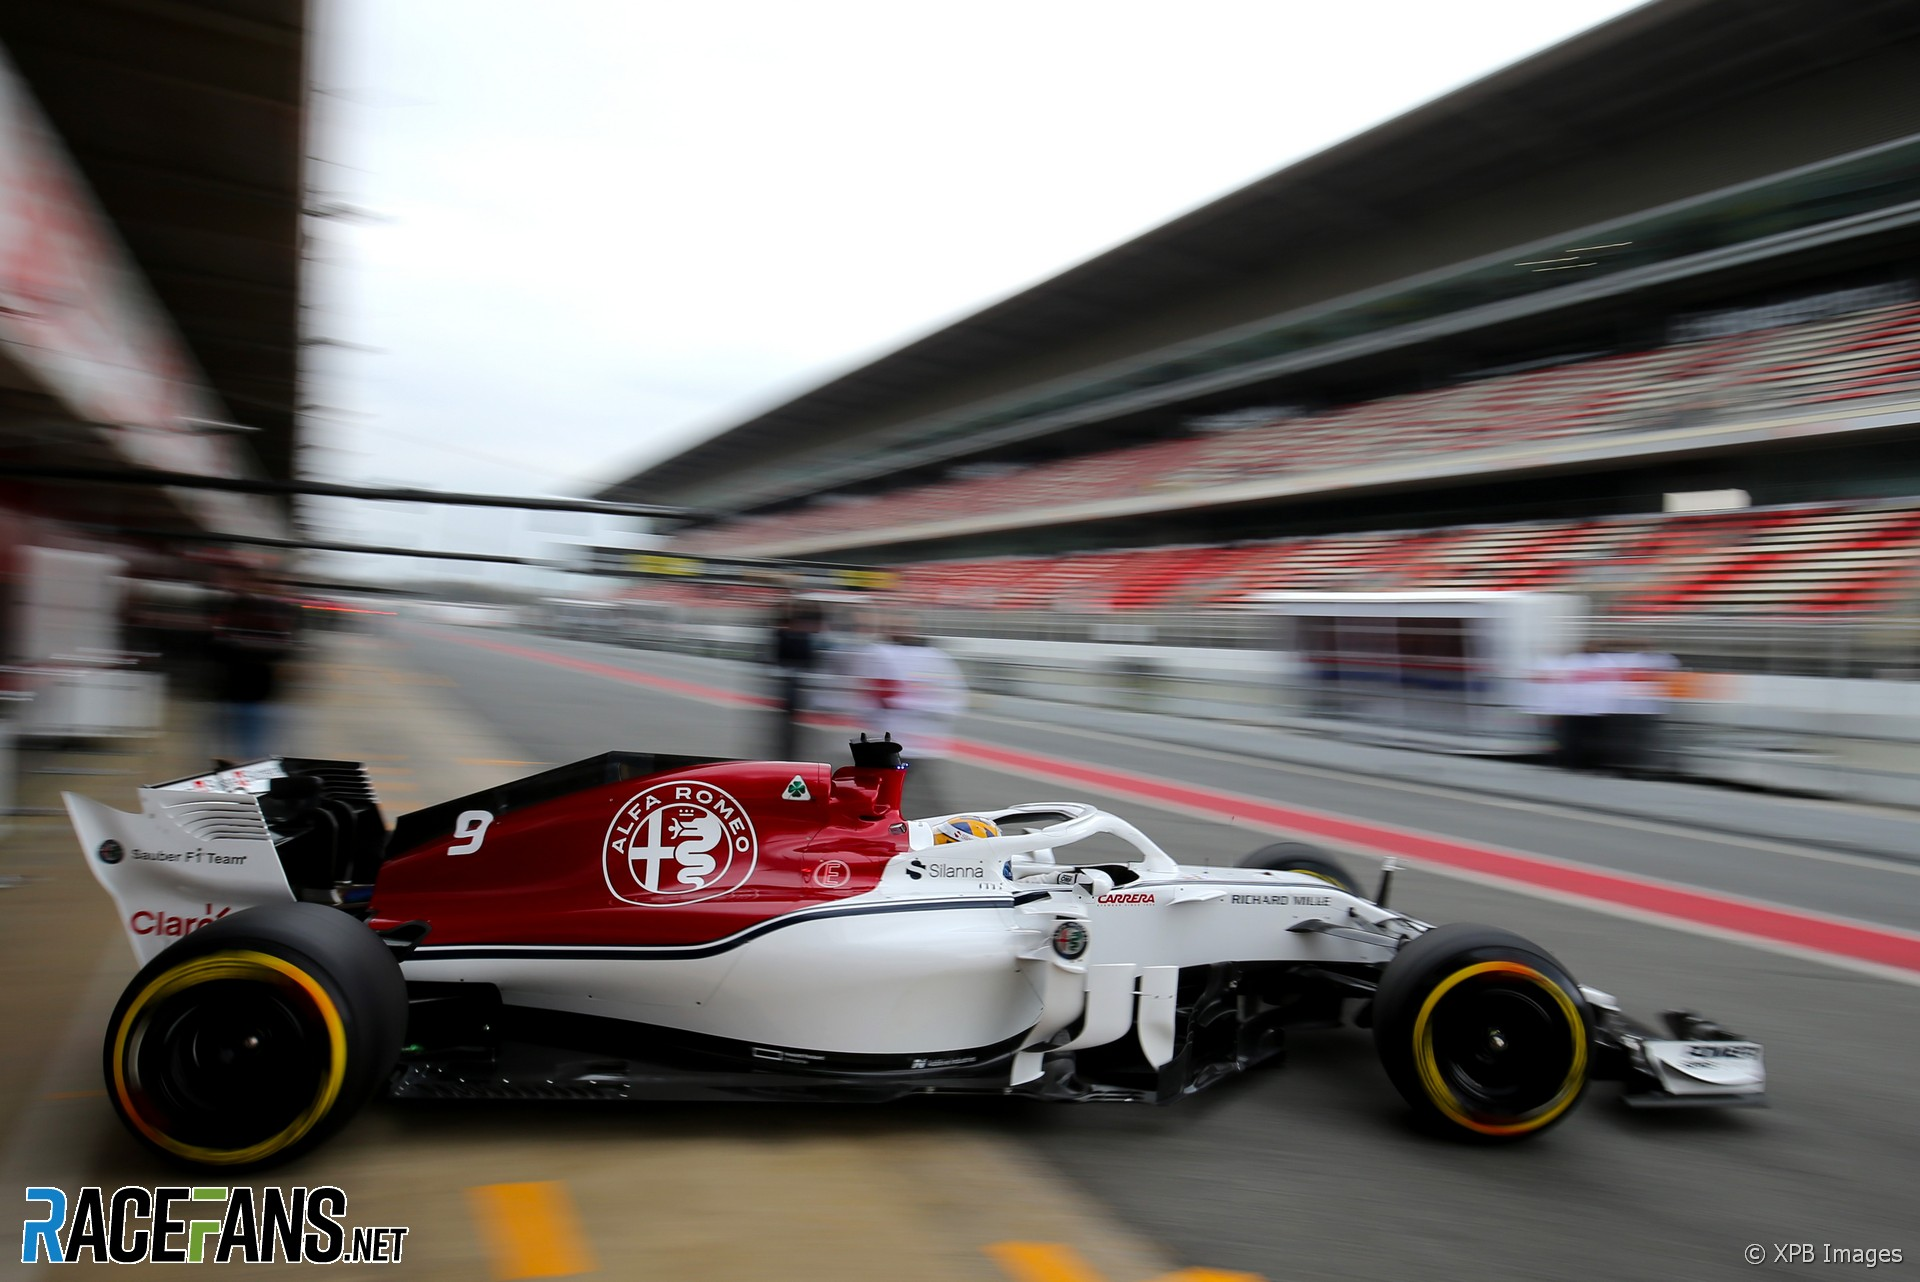 F1 testing to be broadcast live on F1 TV Pro · RaceFans